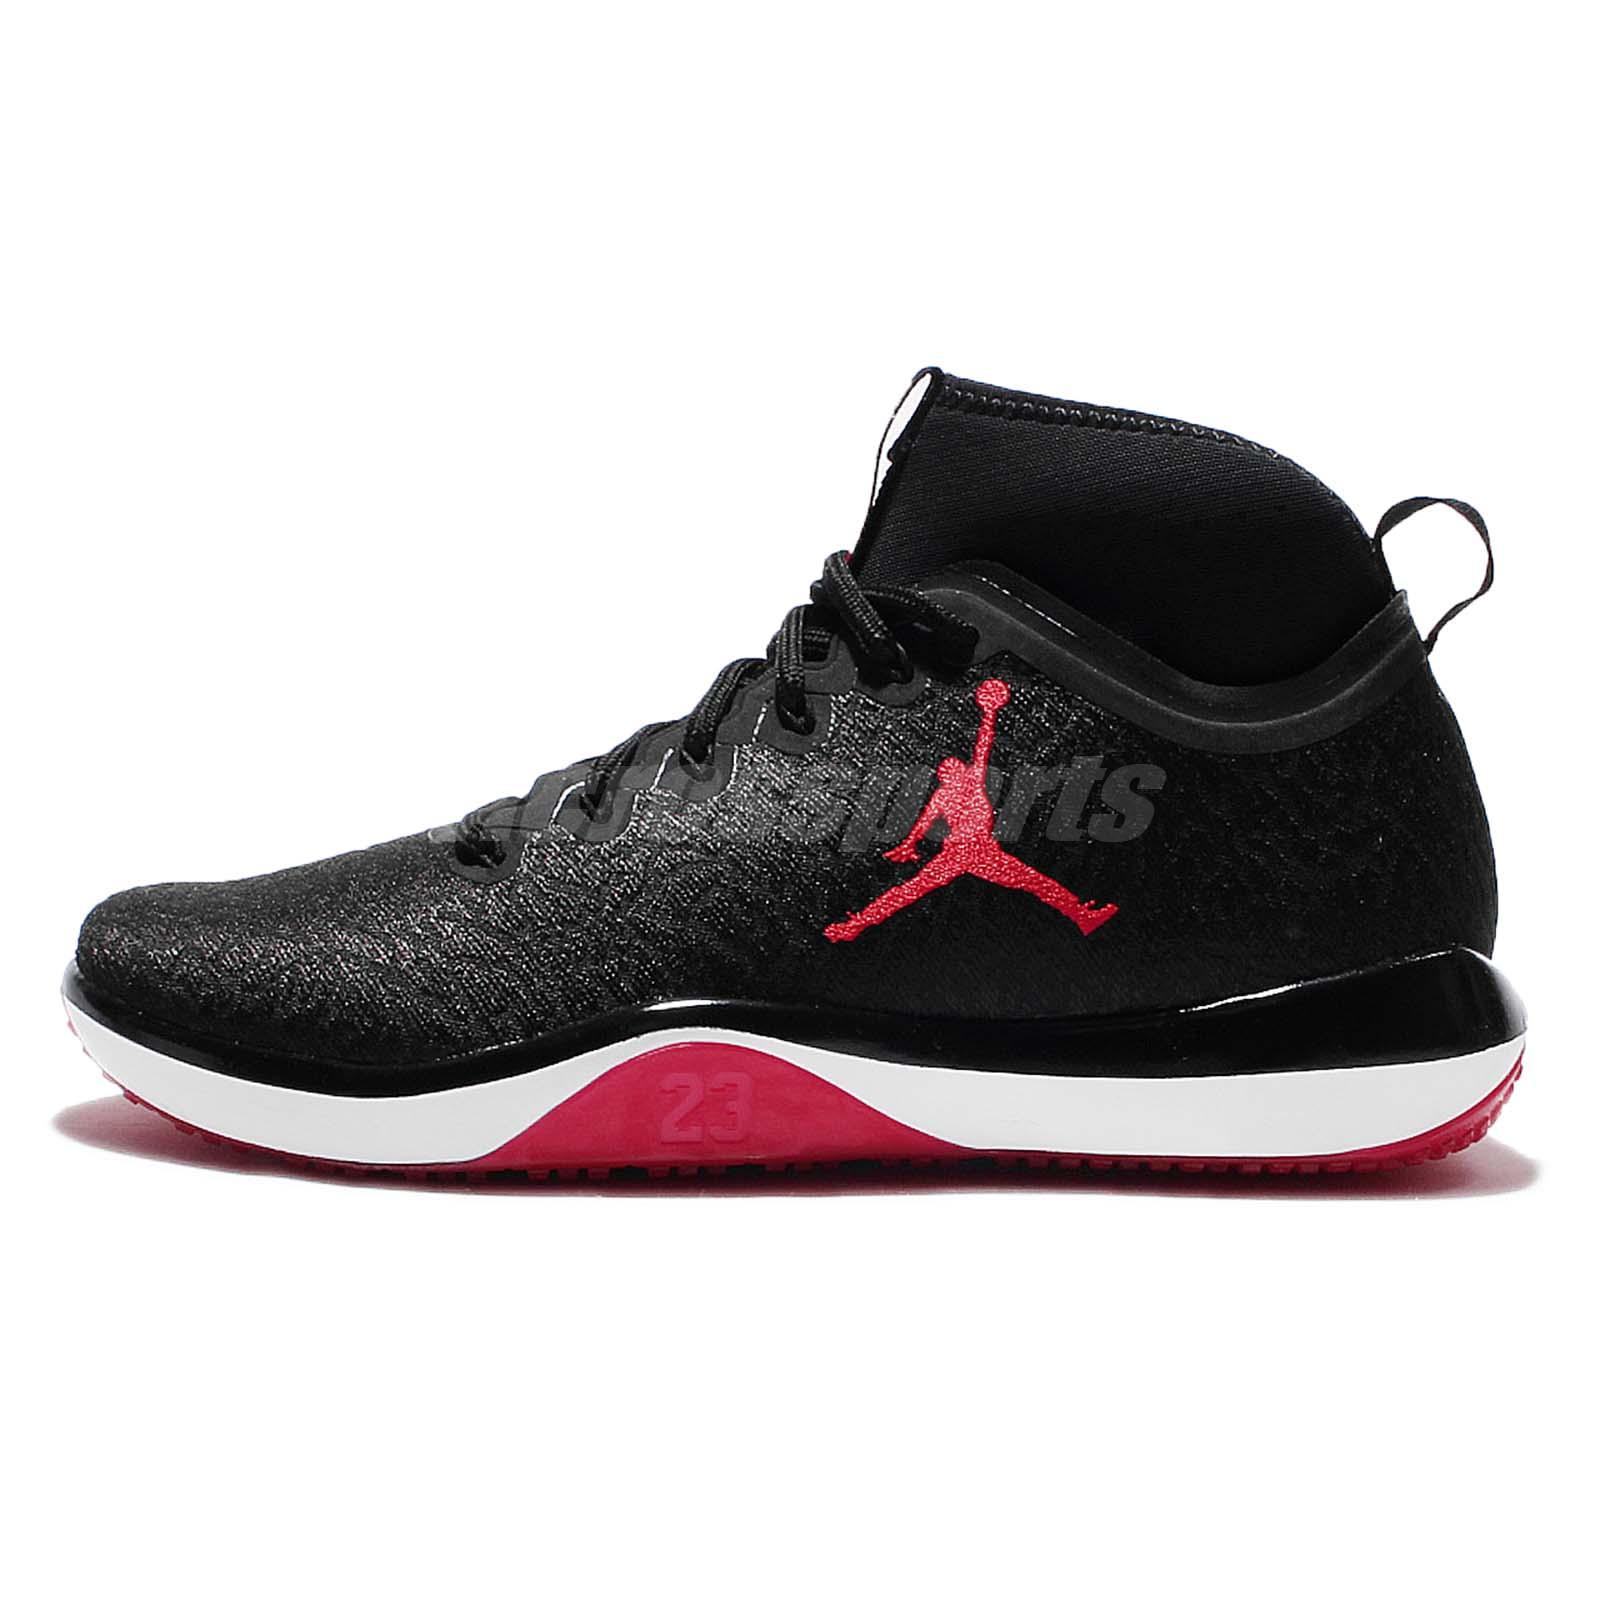 Nike Air Jordan Trainer 1 Black Red Men Cross Training Shoes Trainers 845402-001 | EBay